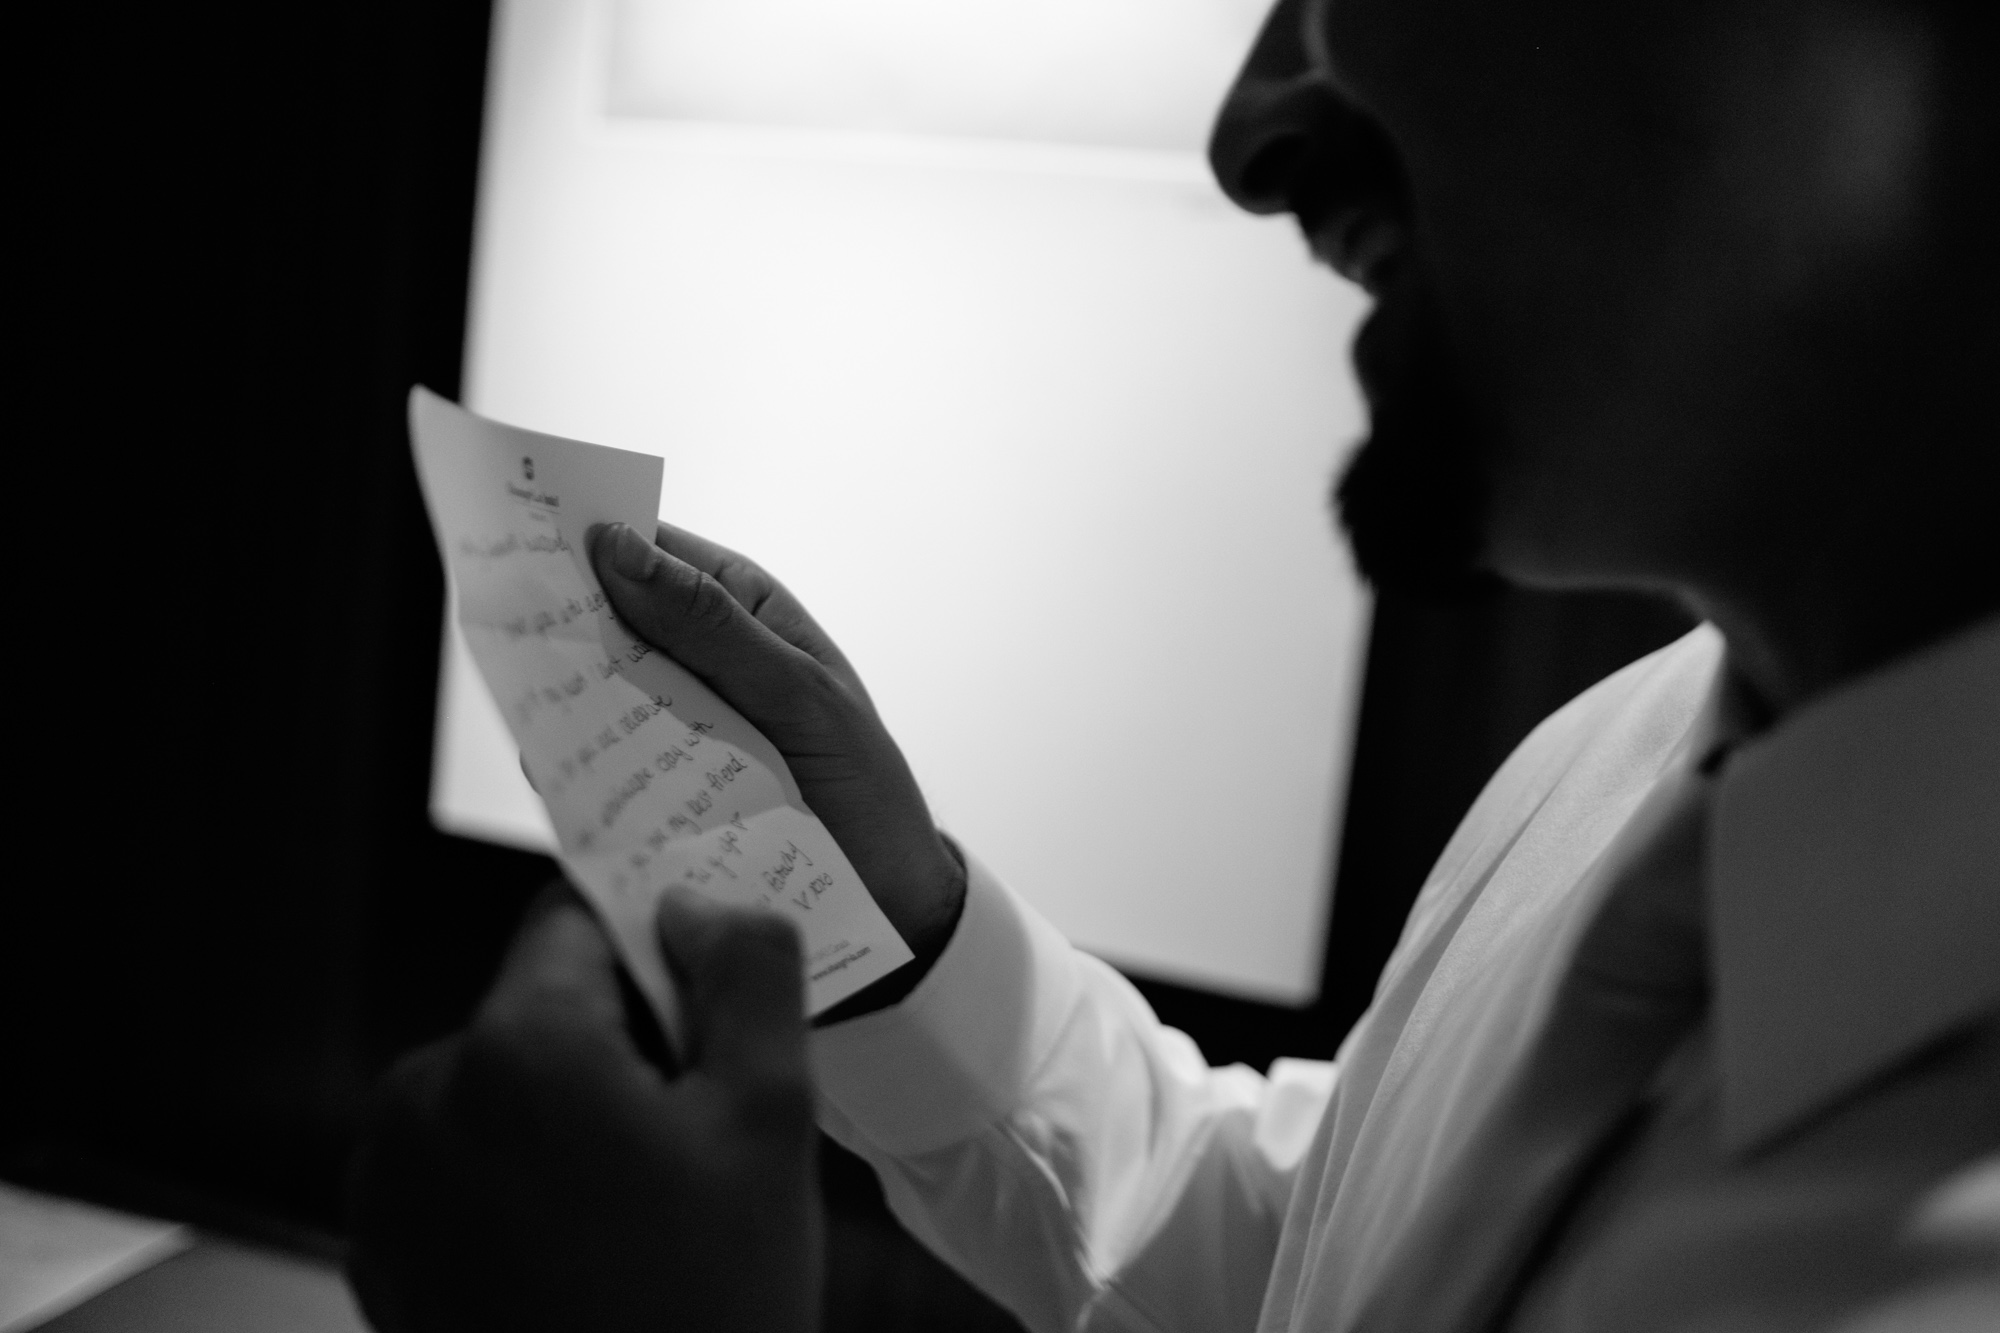 Felipe reads a note from his bride before their wedding at the Fermenting Cellar.